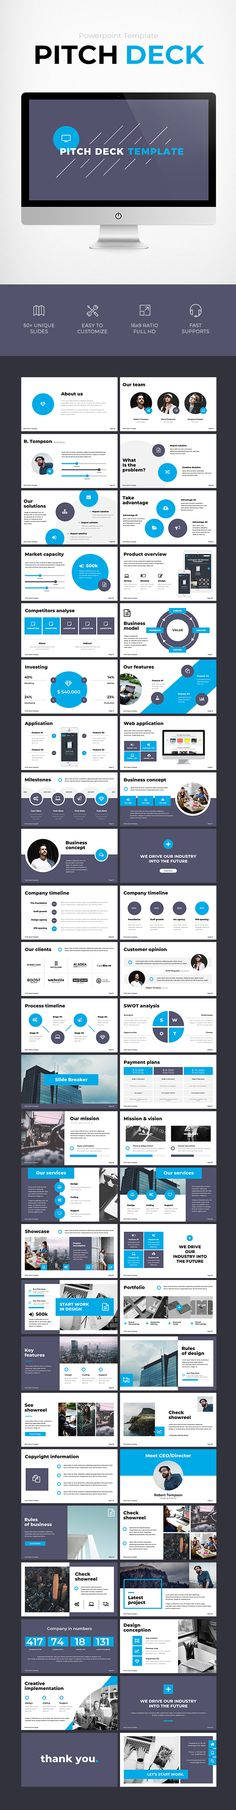 Pitch Deck Template - #Business #PowerPoint Templates